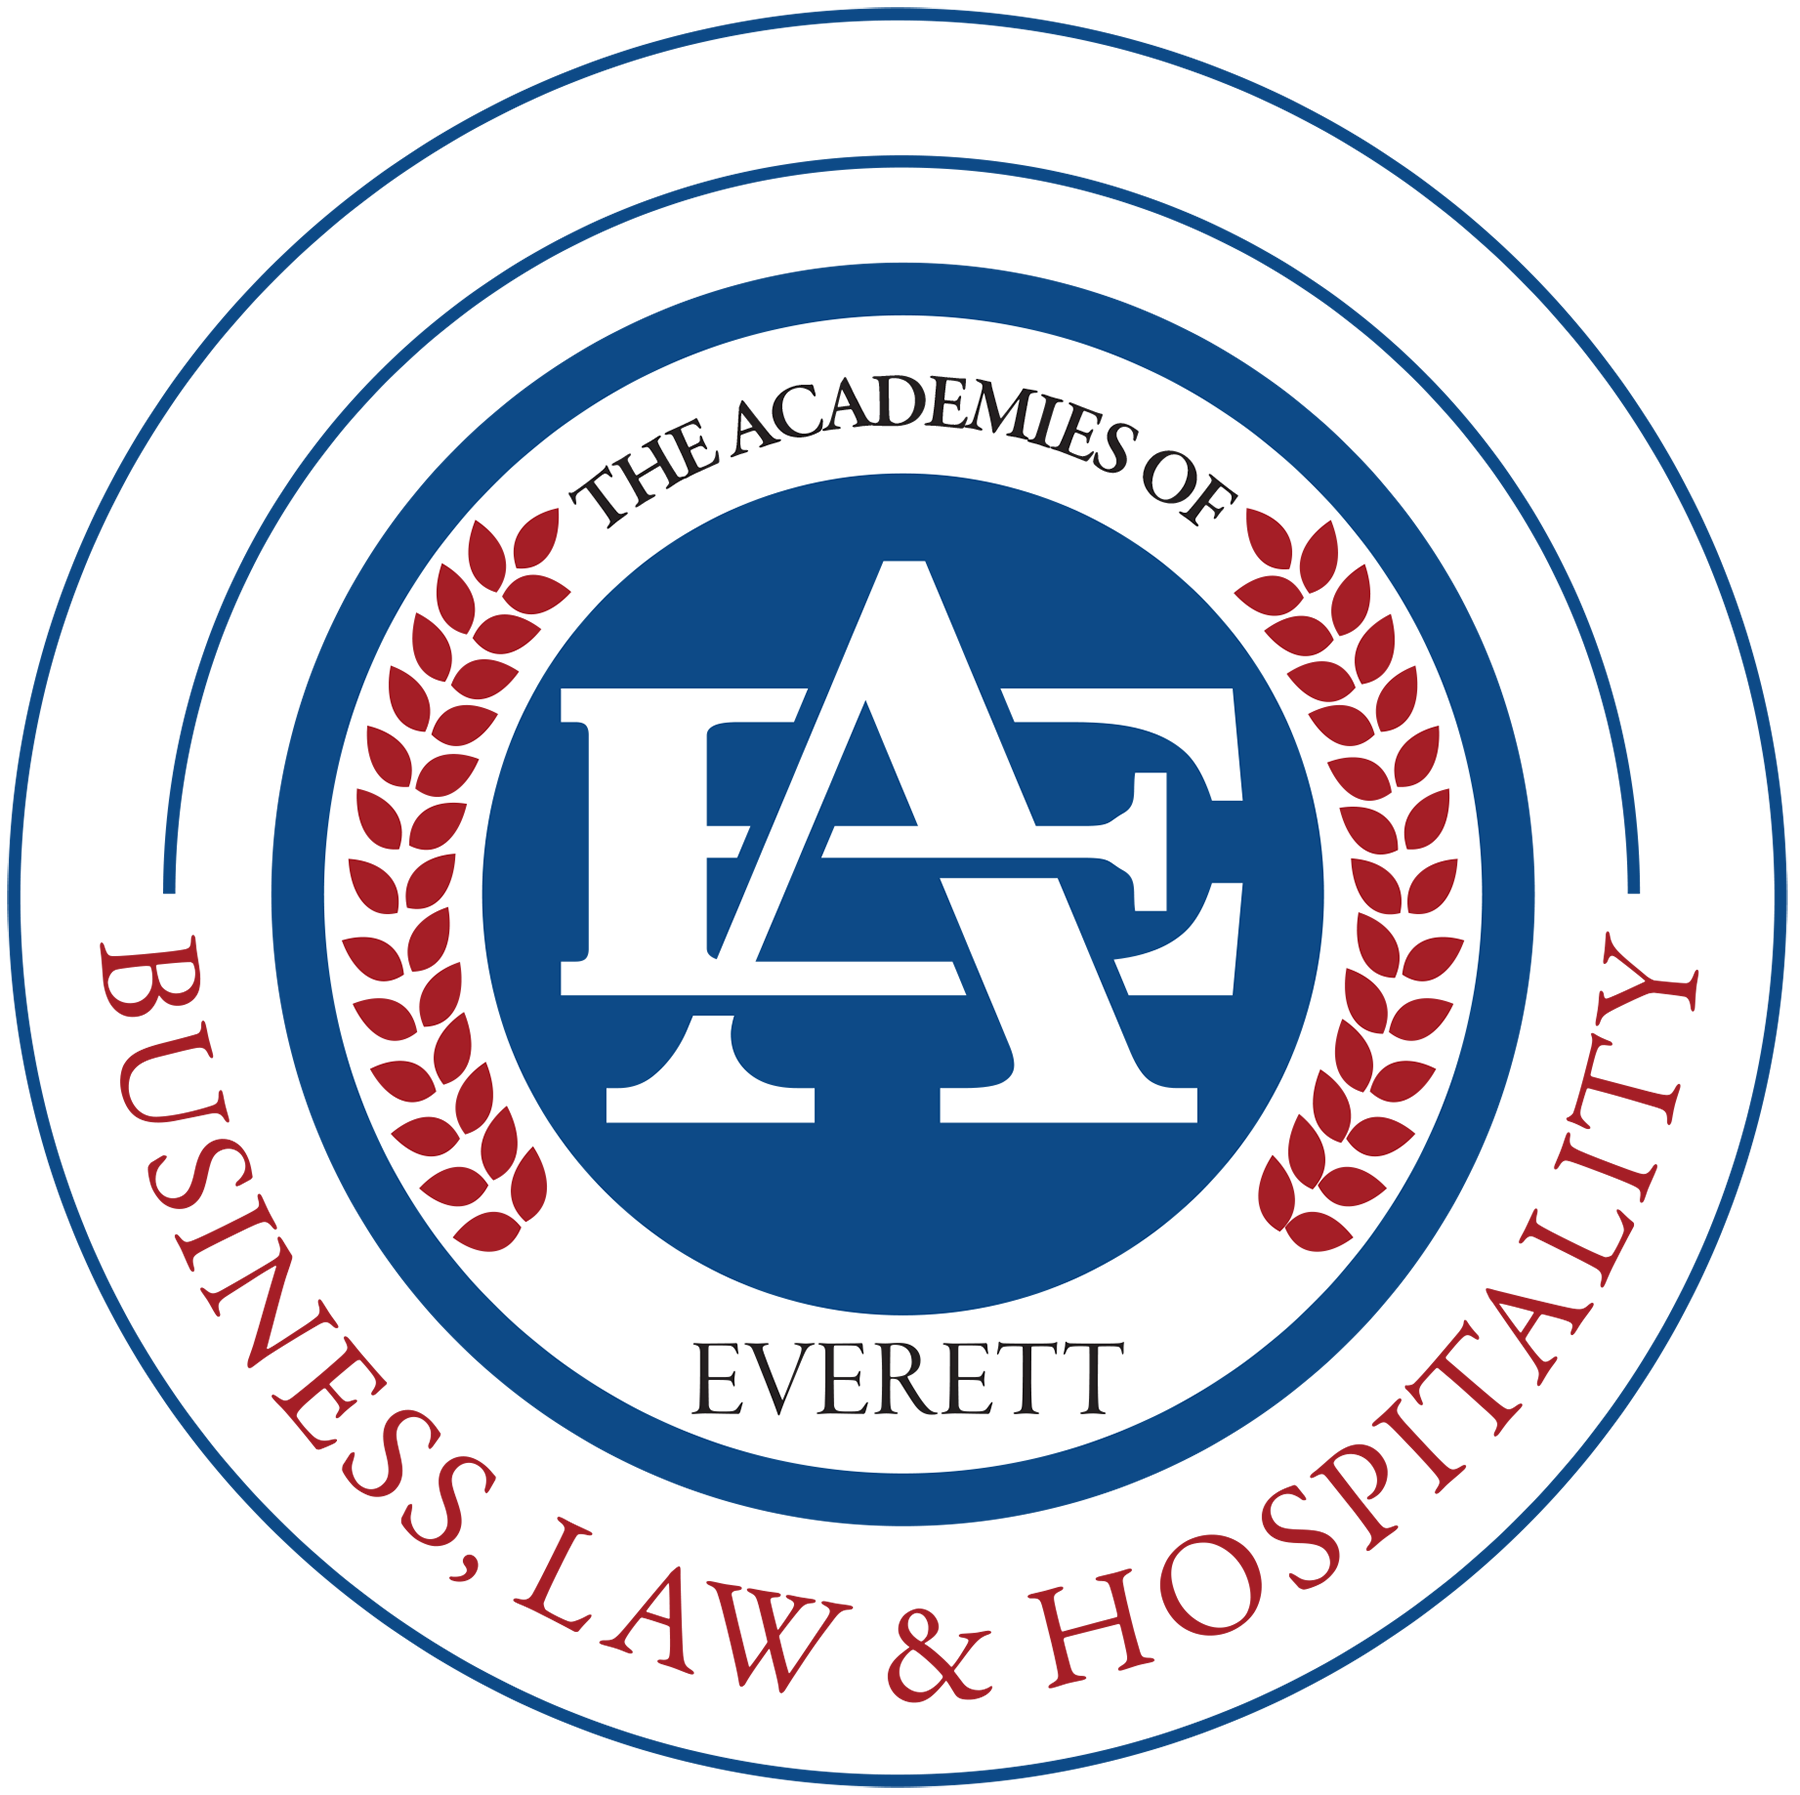 The Business, Law and Hospitality logo featuring blue circles and red leafs